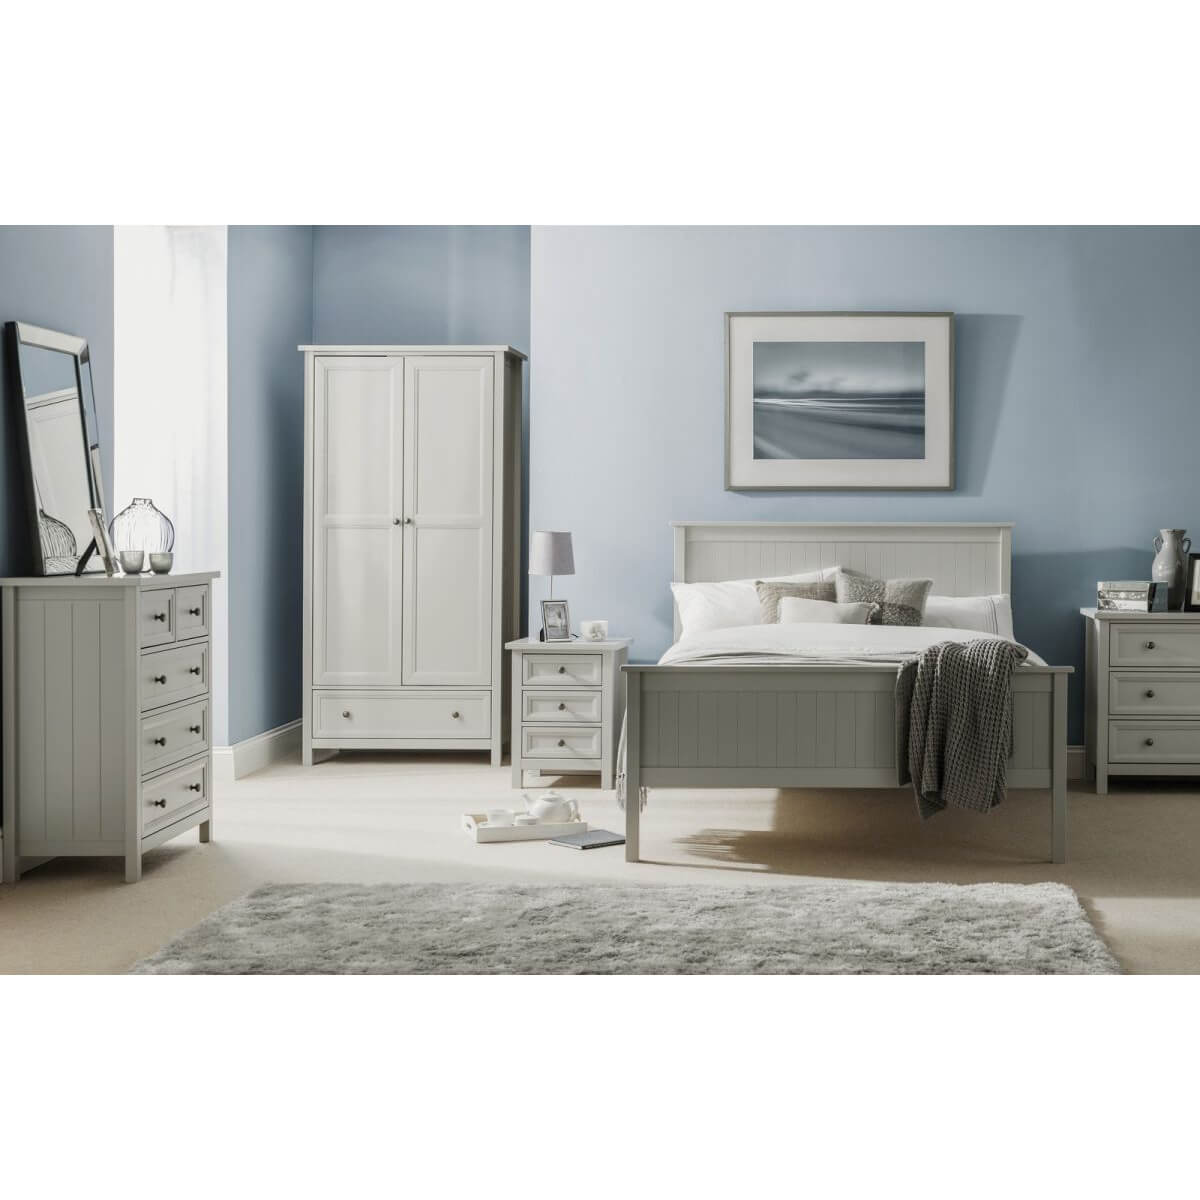 Stamford Wooden bed Frame Dove Grey 3